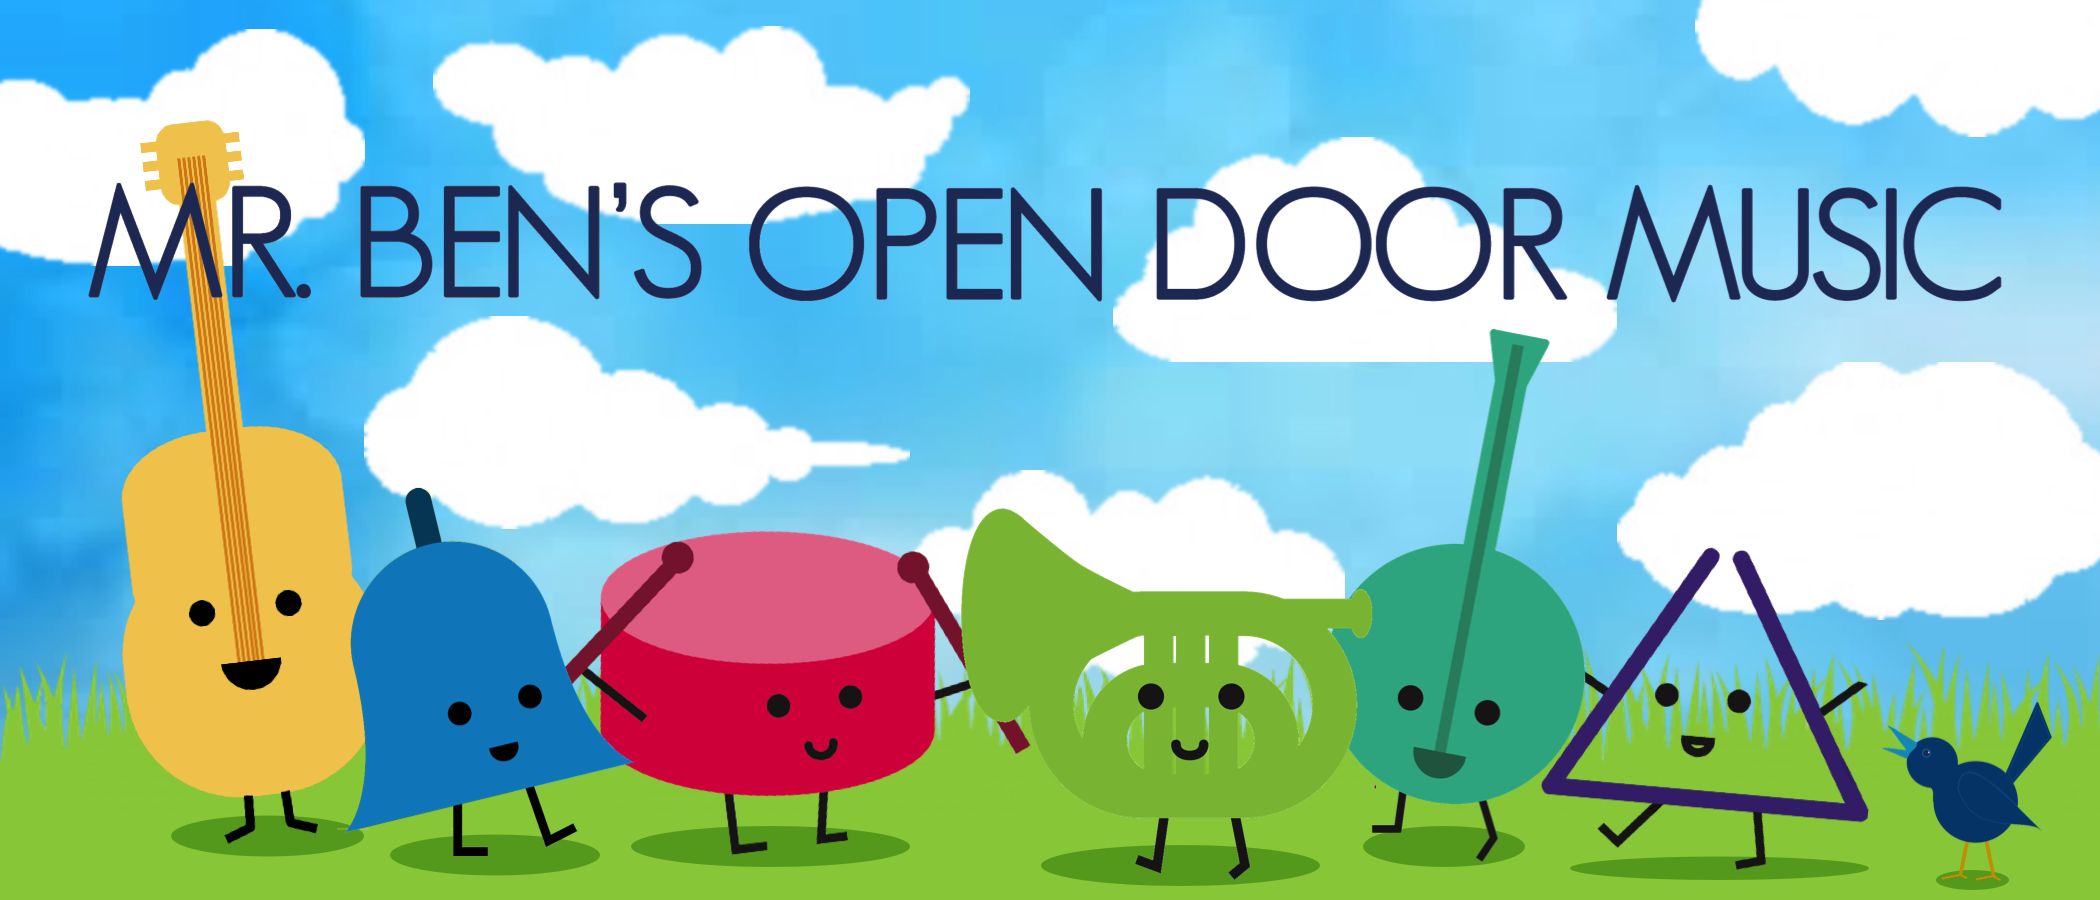 Mr. Ben's Open Door Music banner